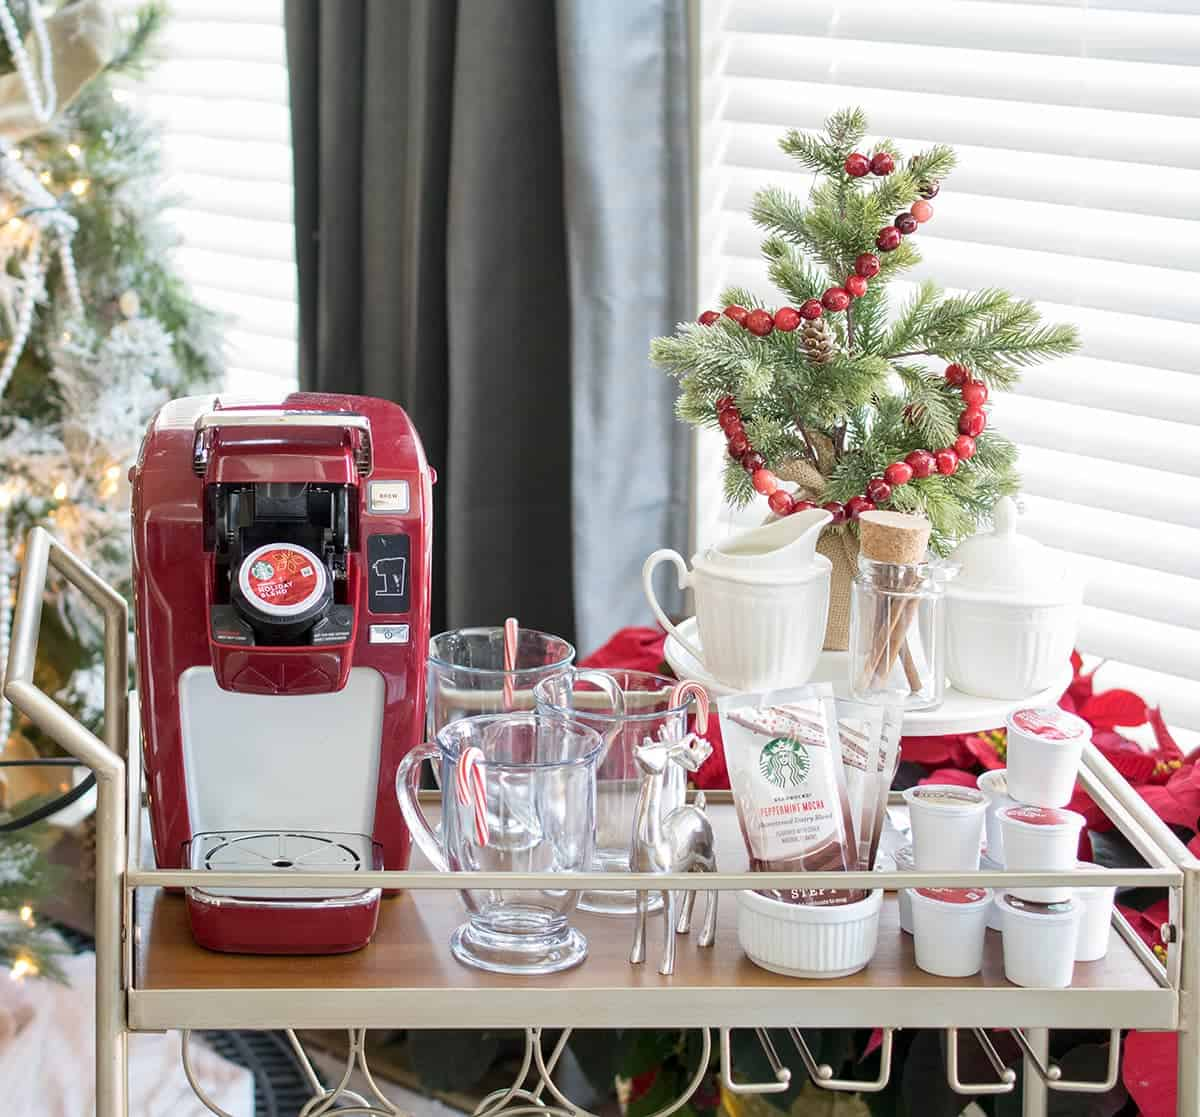 DIY bar cart styling for red Kuerig coffee bar. Small Christmas accents on cart and in background.